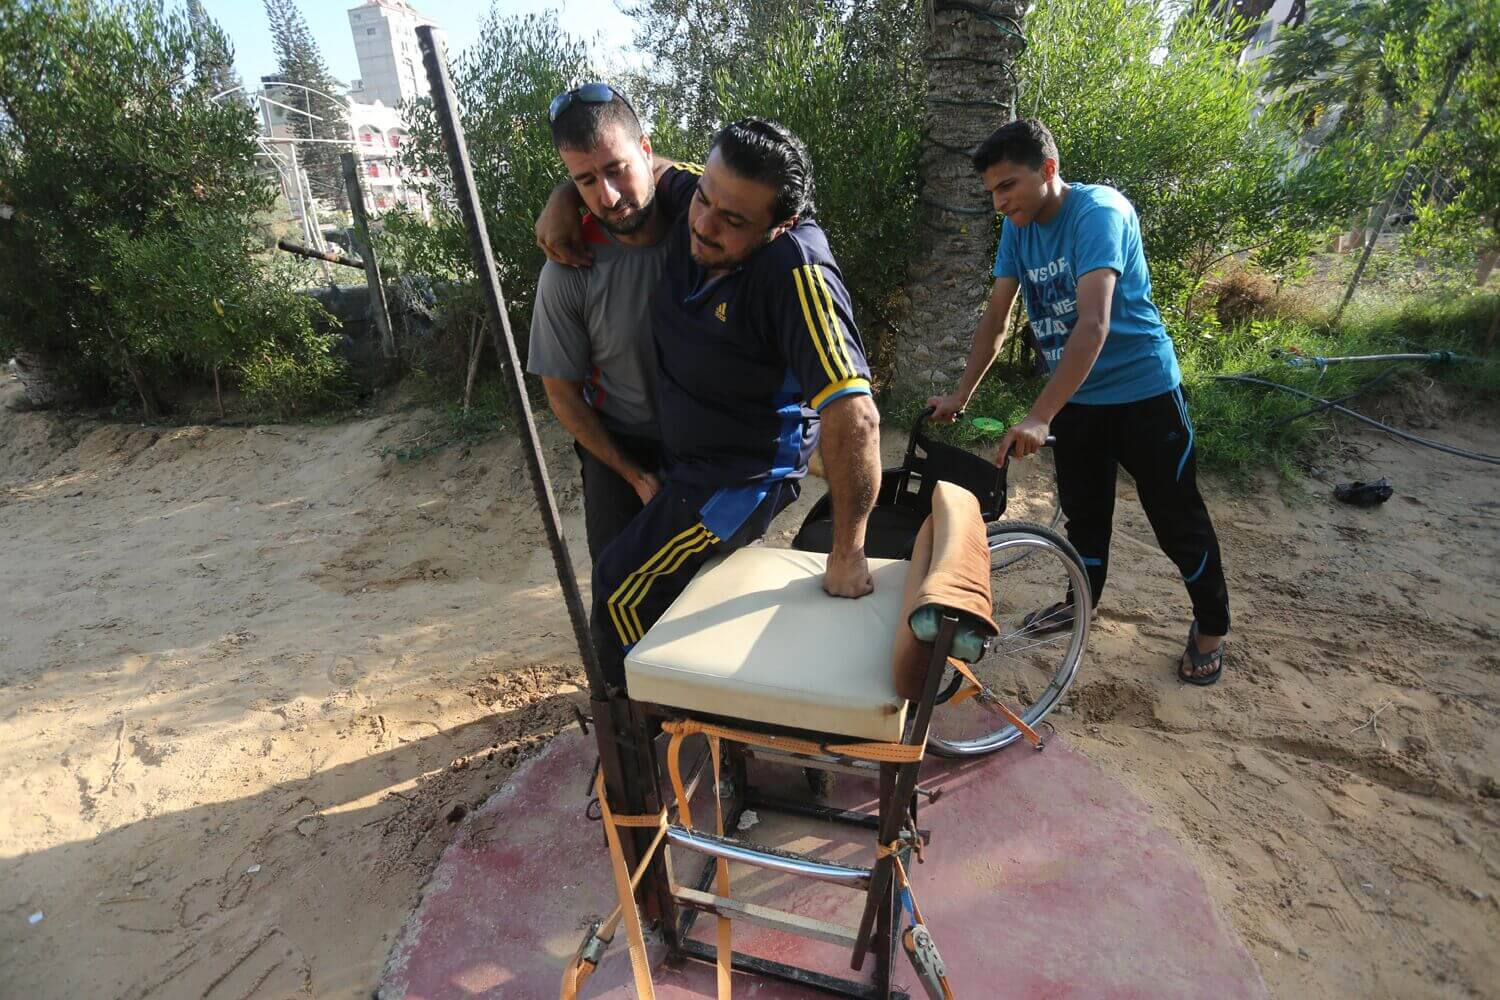 Trainer Mohammed Dahman helps Hossam Azzum into his shot put performance chair. (Photo: Mohammed Asad)